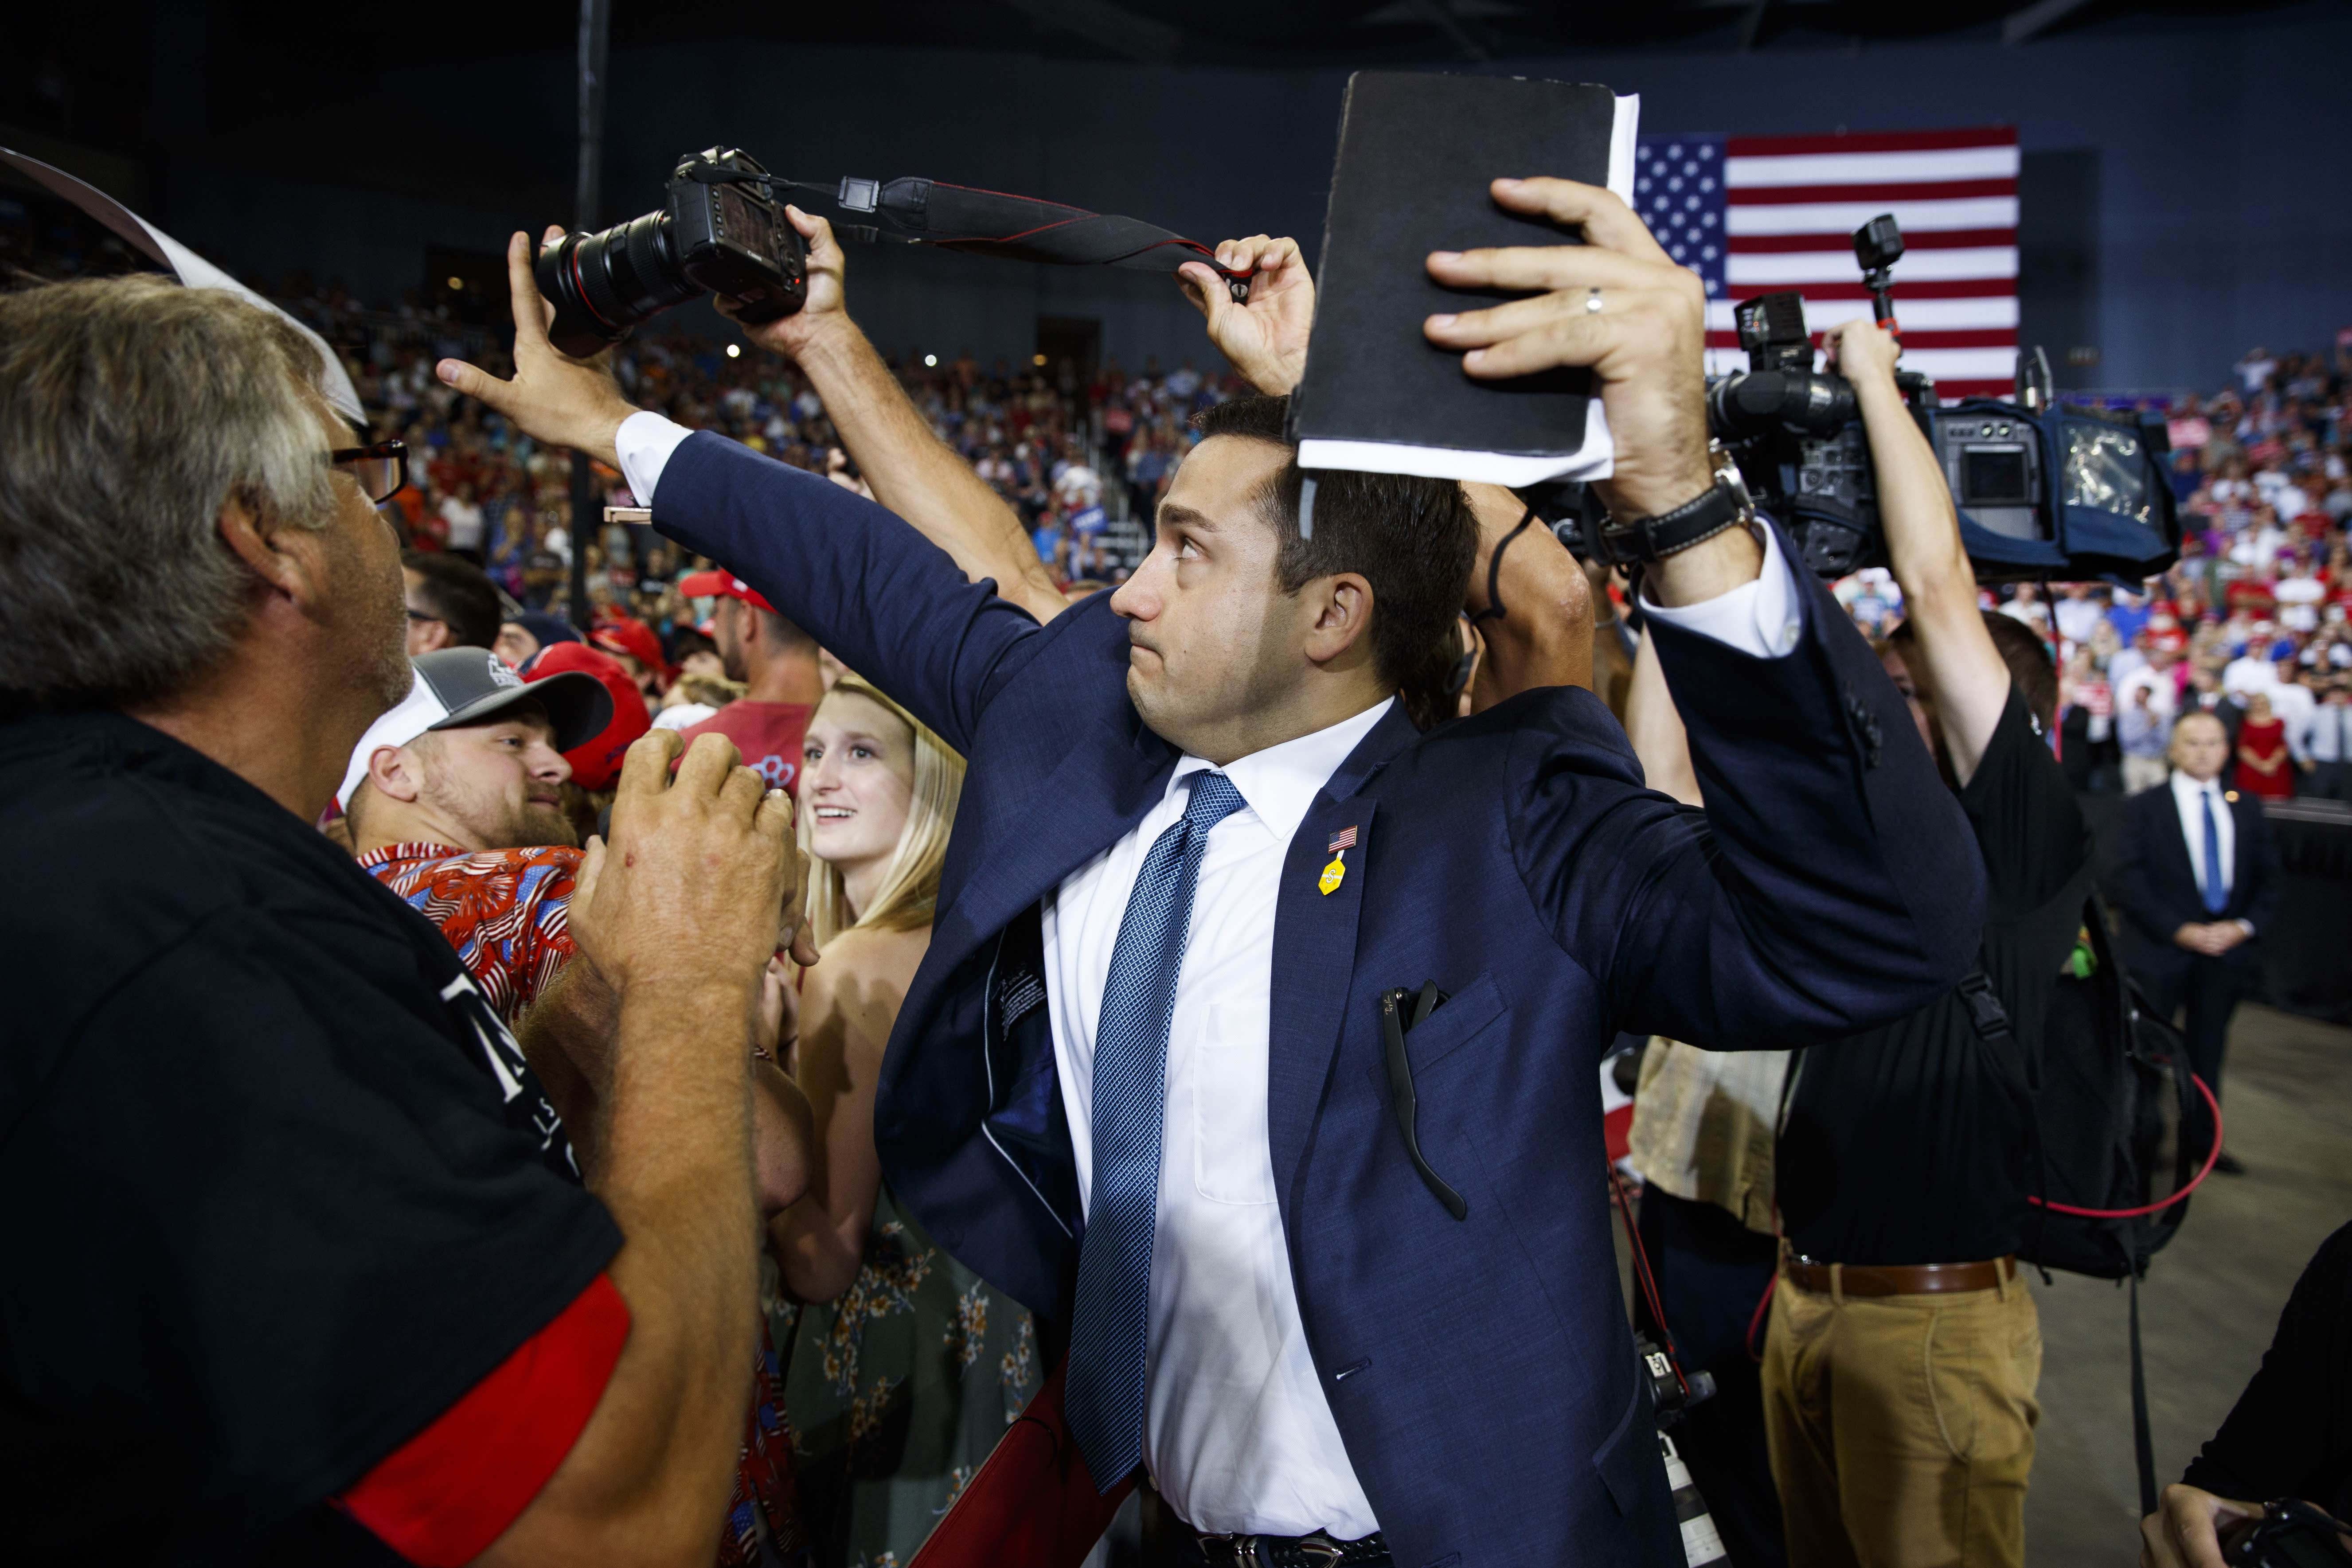 ADDS THAT MAN BLOCKING CAMERA IS A VOLUNTEER - A volunteer member of the advance team for President Donald Trump blocks a camera as a photojournalist attempts to take a photo of a protester during a campaign rally at the Ford Center, Thursday, Aug. 30, 2018, in Evansville, Ind. (AP Photo/Evan Vucci)